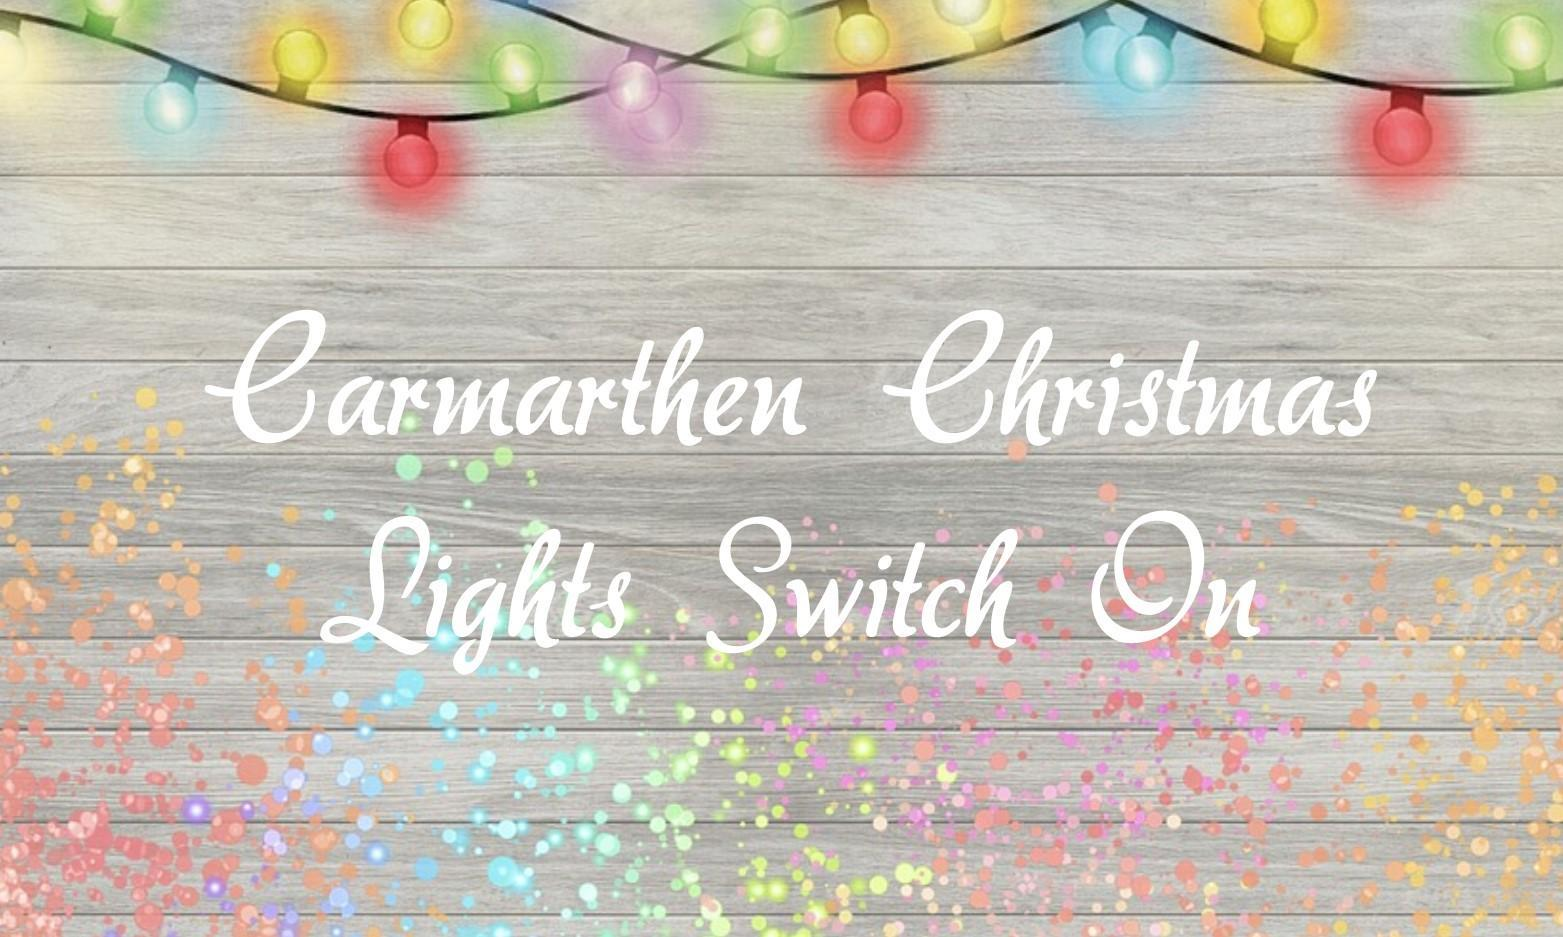 Carmarthen Christmas Lights Switch On